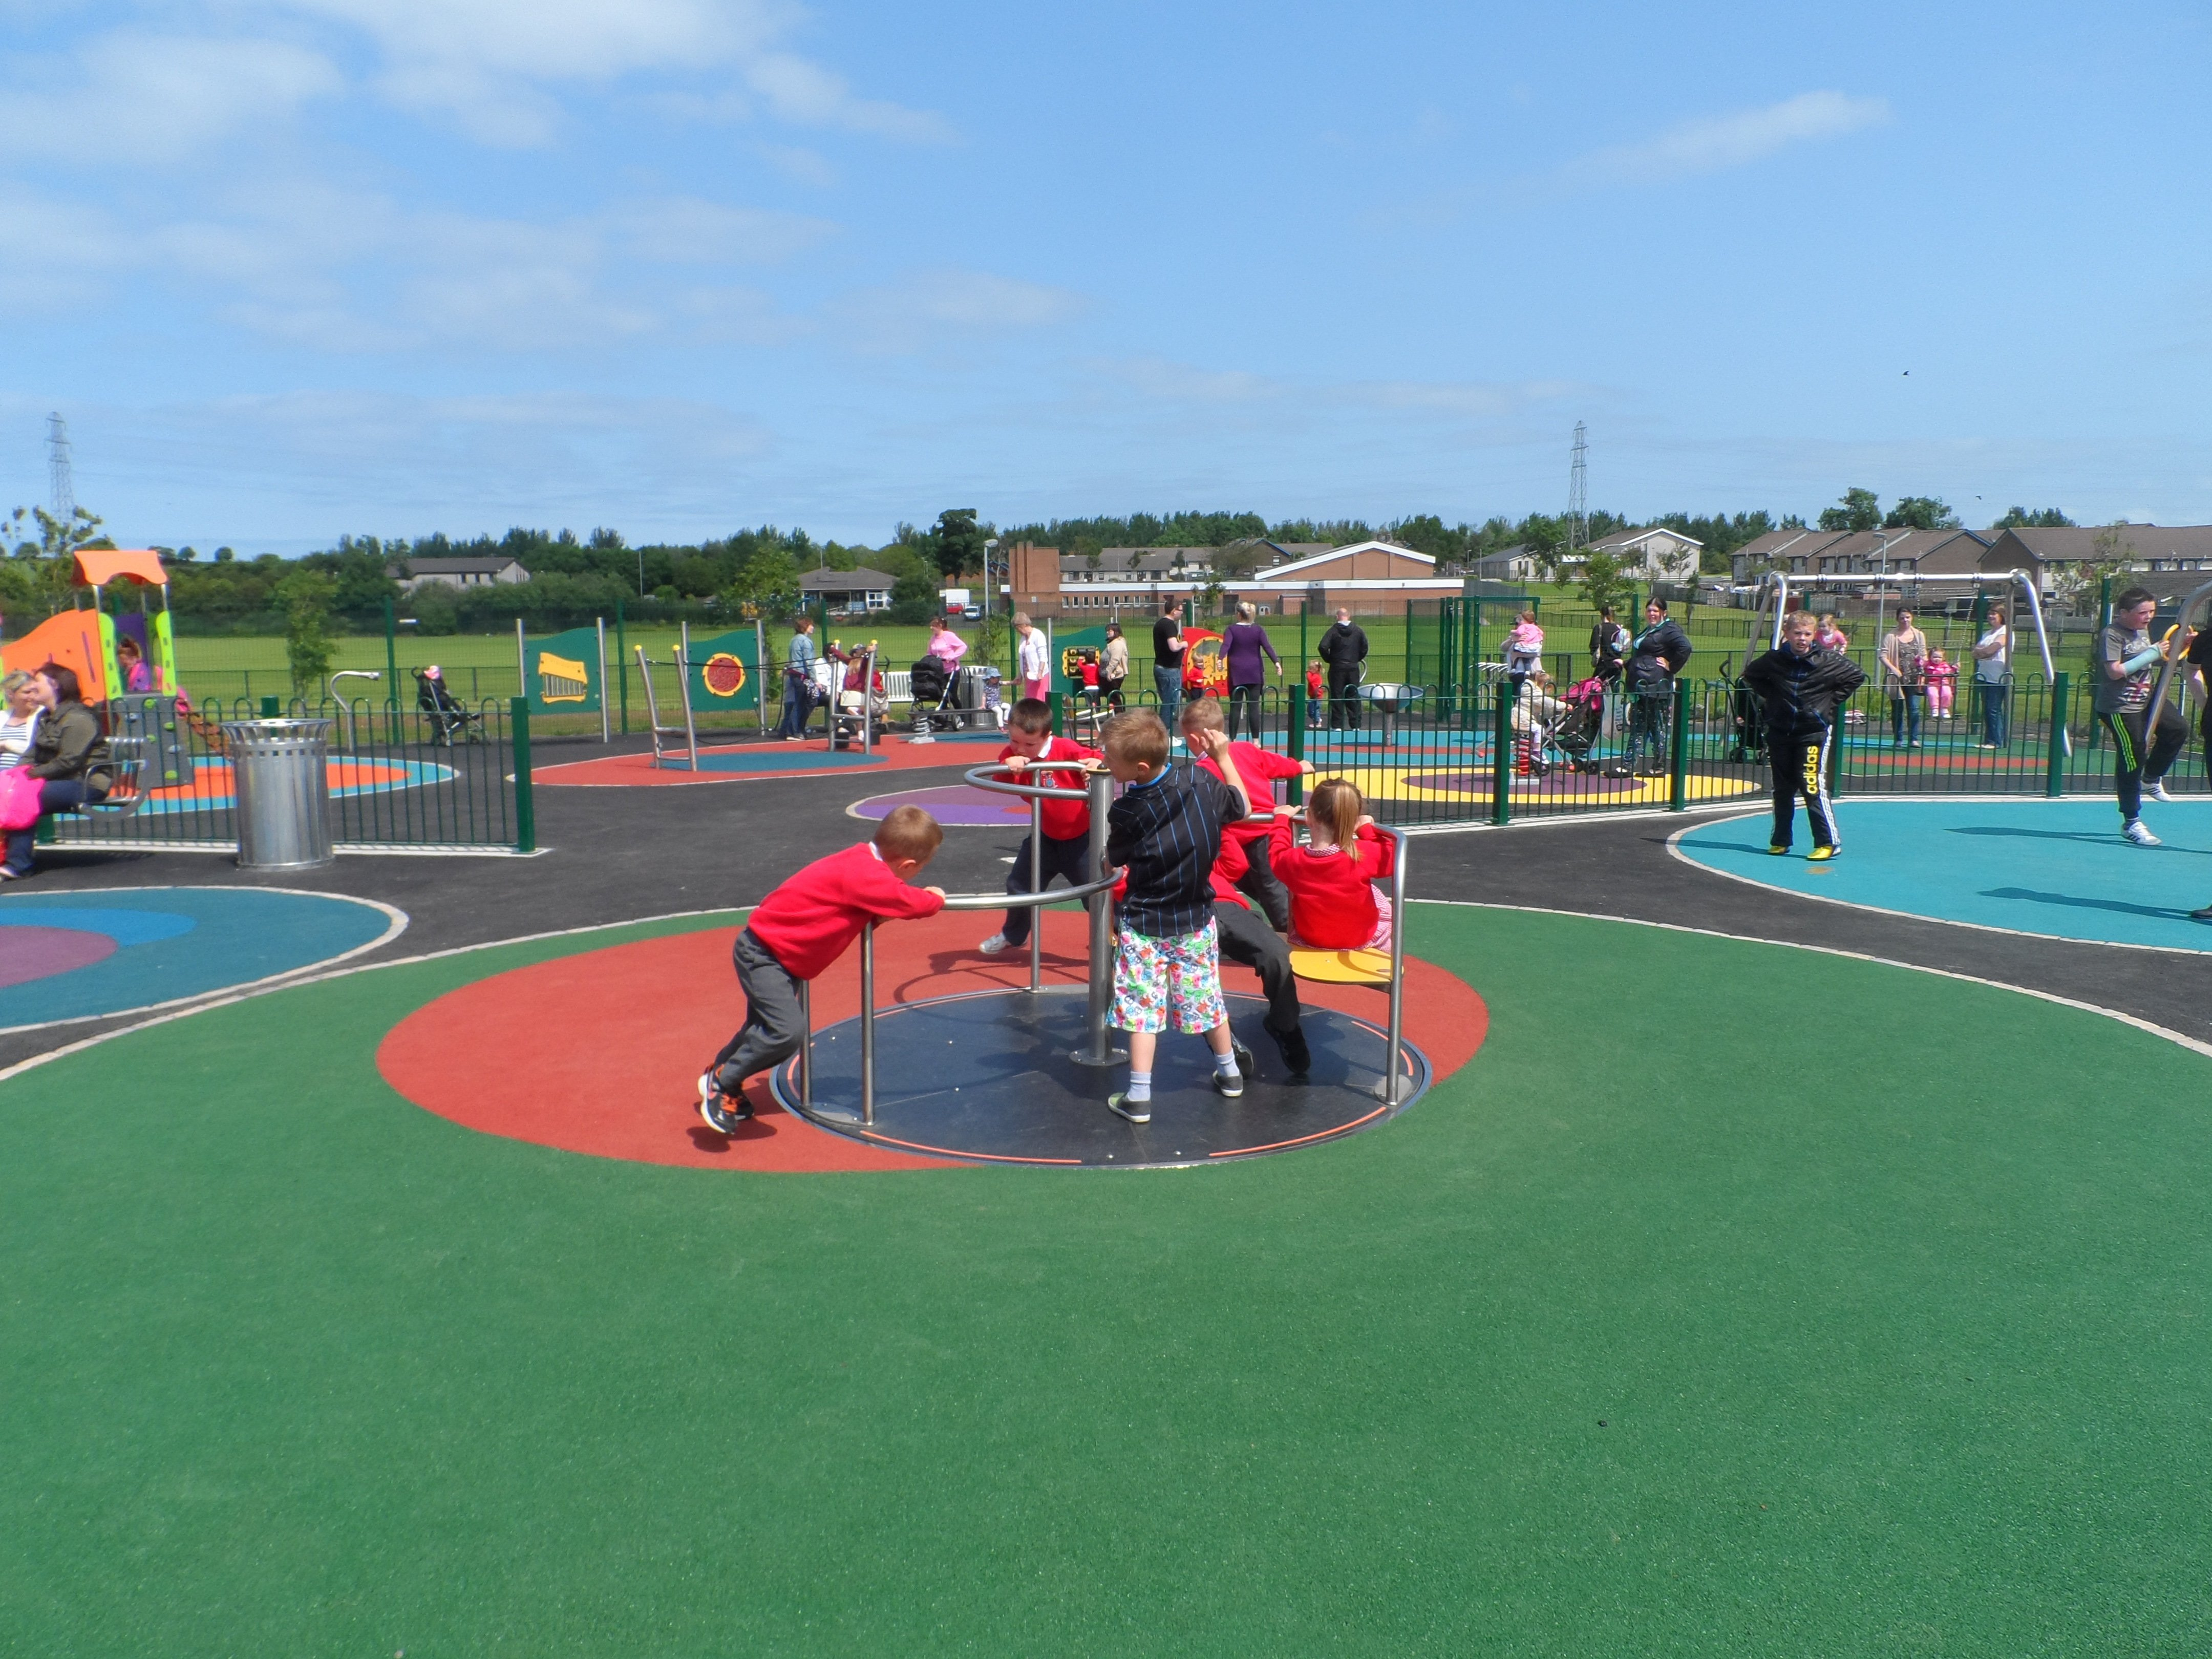 Children on a roundabout in the middle of the outdoor play area